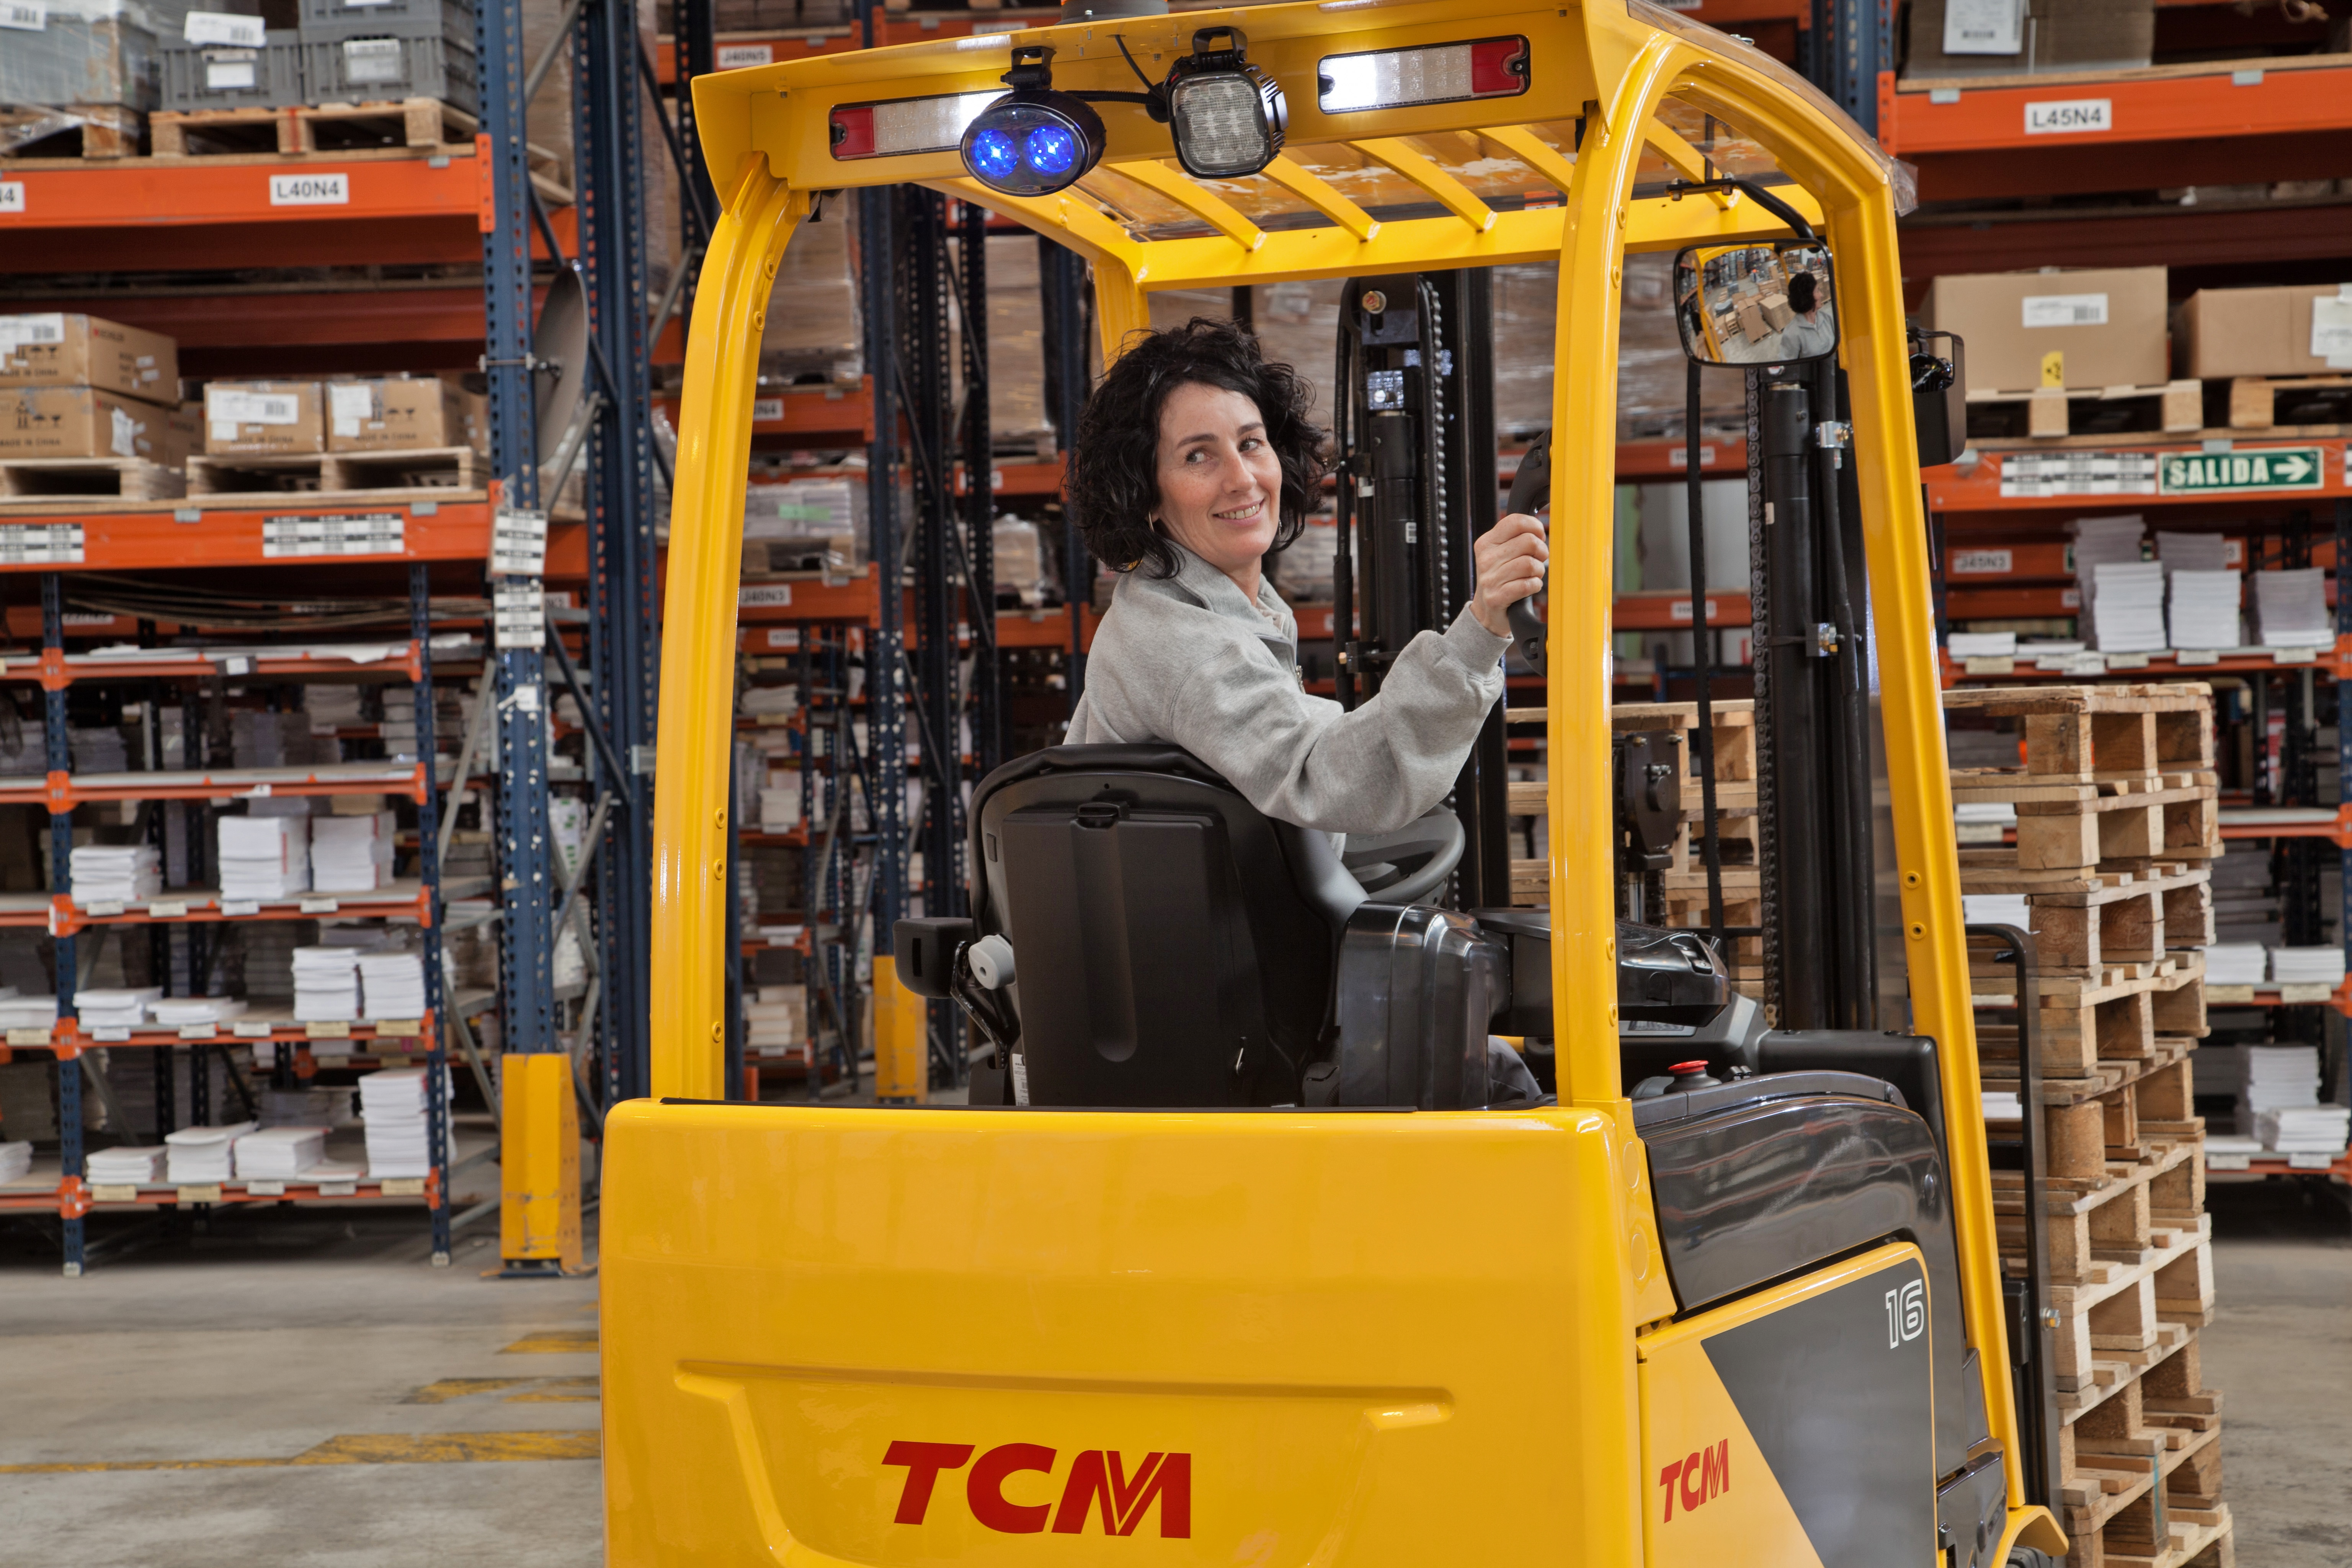 Electric counterbalance forklift truck